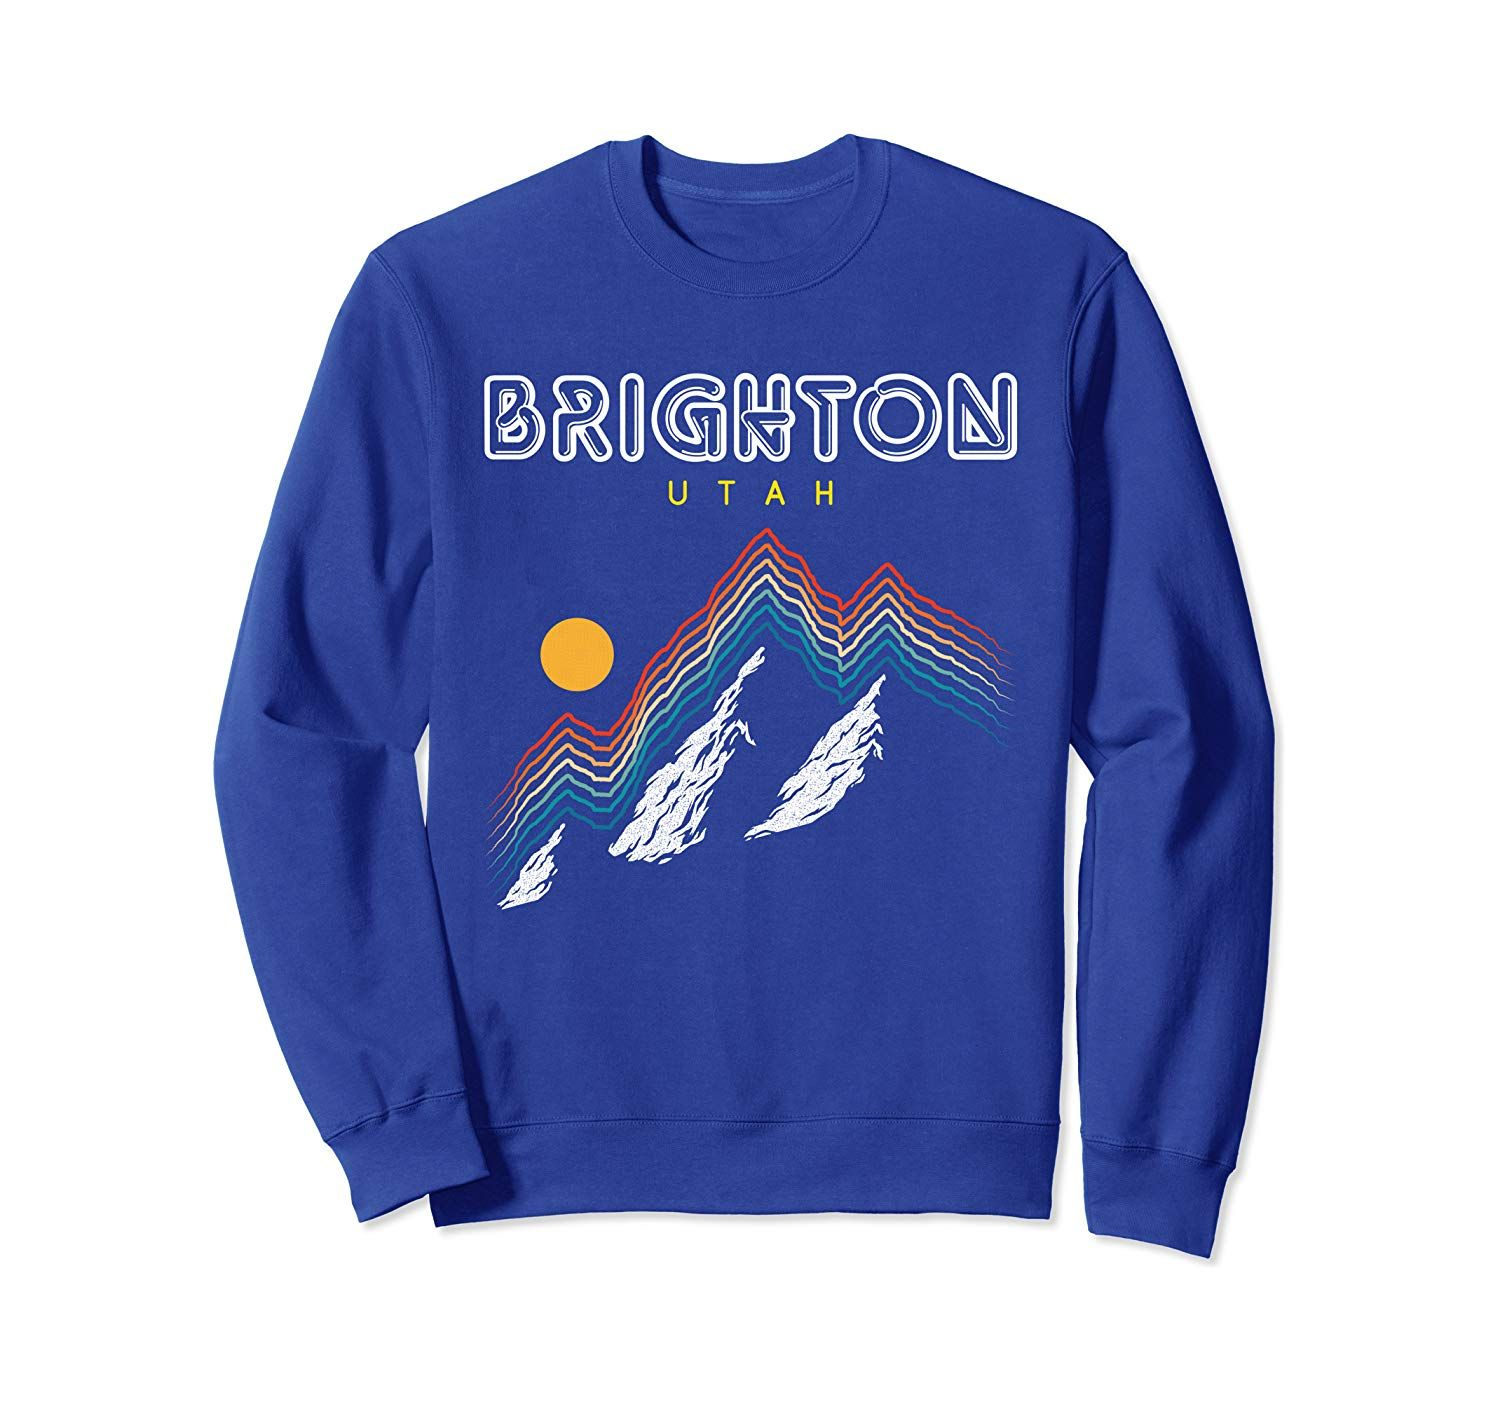 Brighton, Utah - USA Ski Resort 1980s Retro Sweatshirt #utahusa